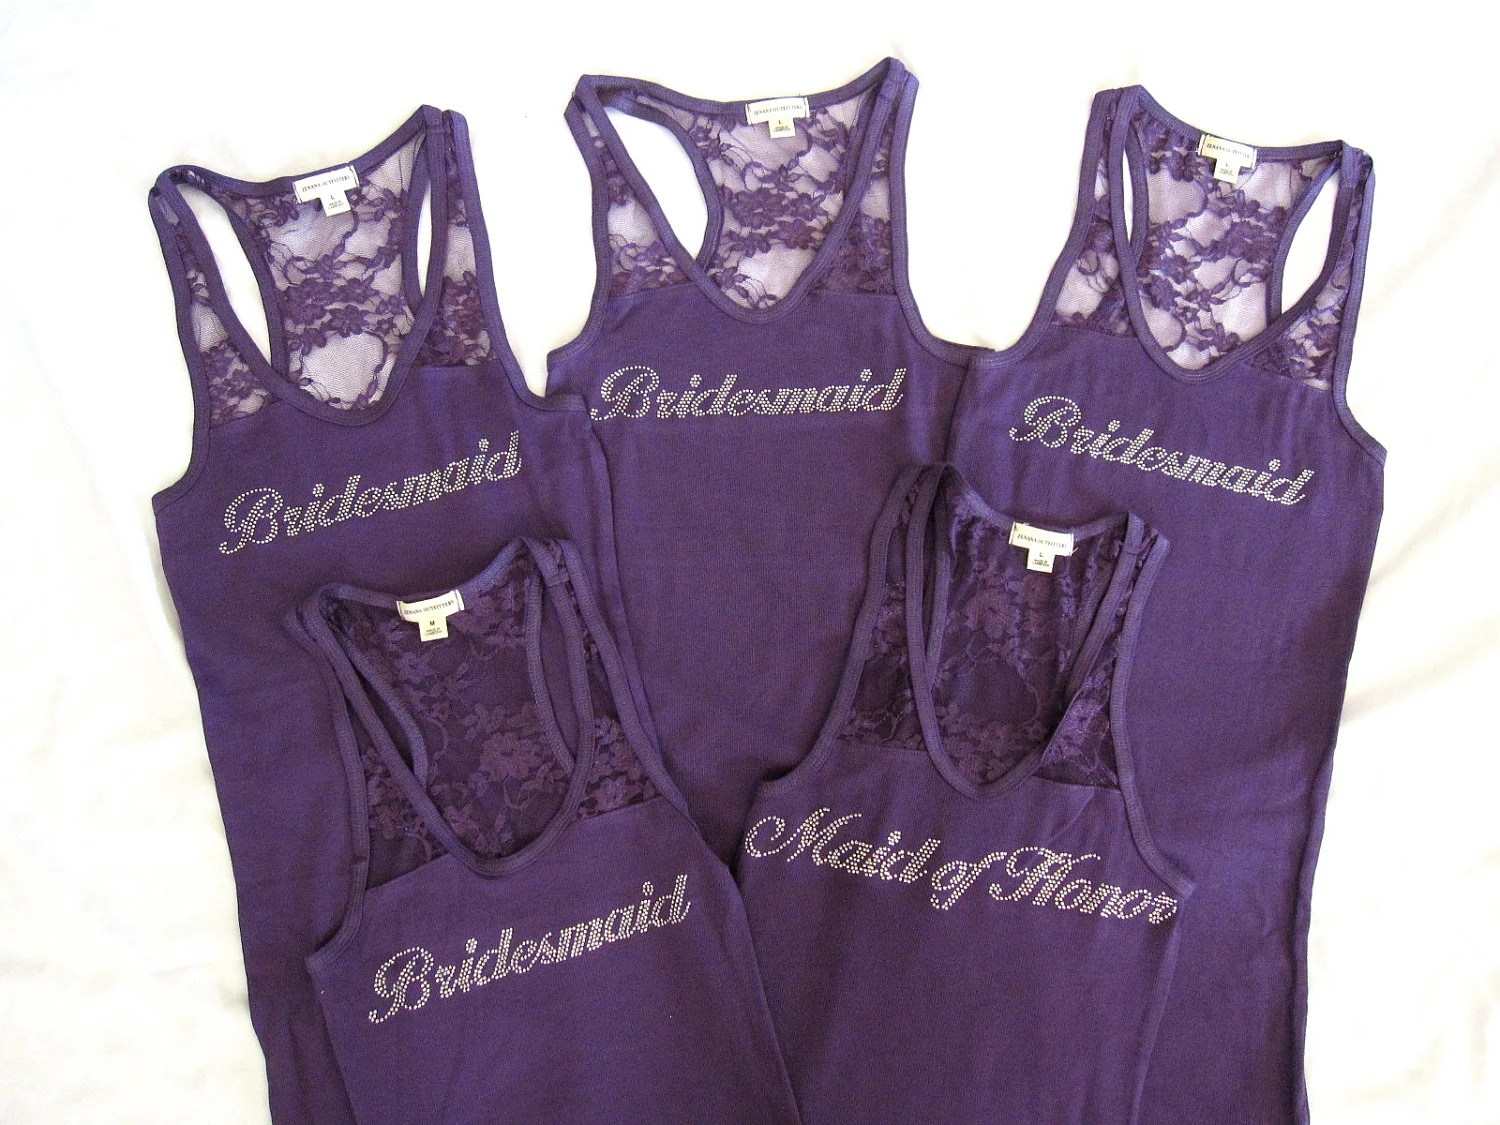 5 Bridesmaid Tank Top Shirt. Half Lace. Bride, Maid of Honor, Matron of Honor. Purple, Black, White, Pink, Coral, Tiffany Blue